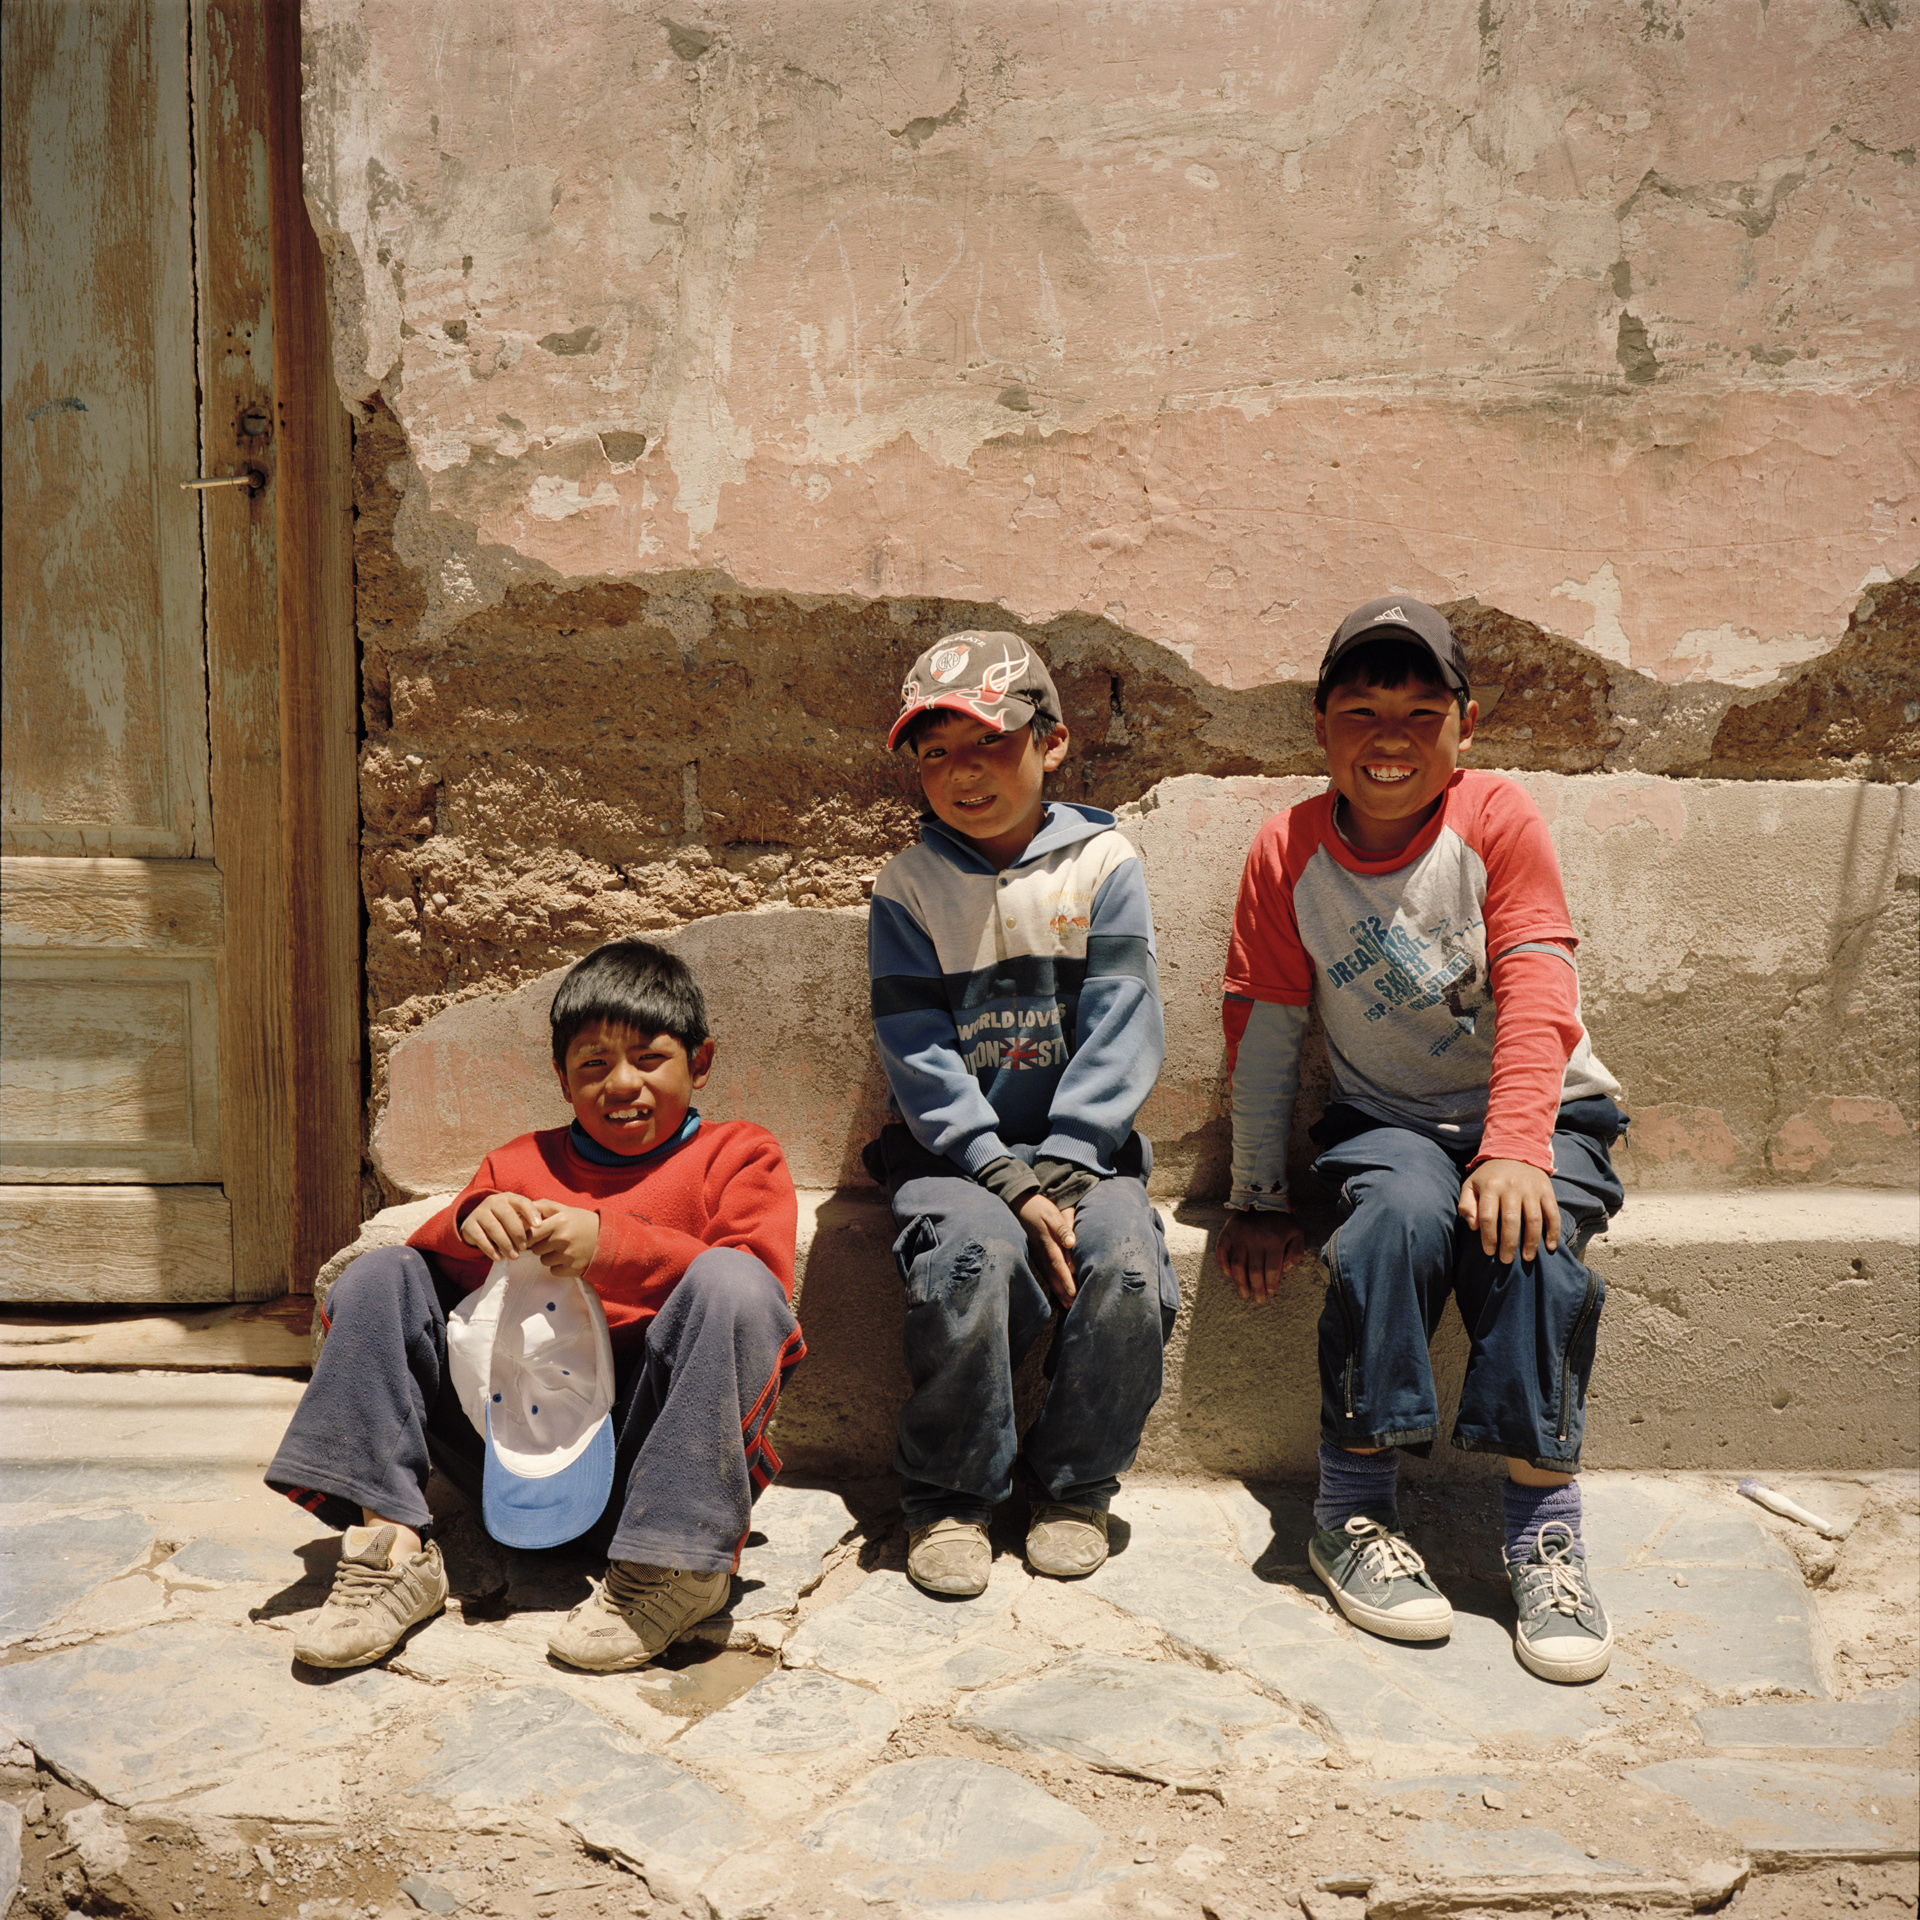 Salta Province. San Antonio de los Cobres. Mining town with 4,200 inhabitants. Boys sit outside a house in the town centre. The elevation at this location is 3,750 meters (12,300 feet), one of the highest of any city or town in Argentina.